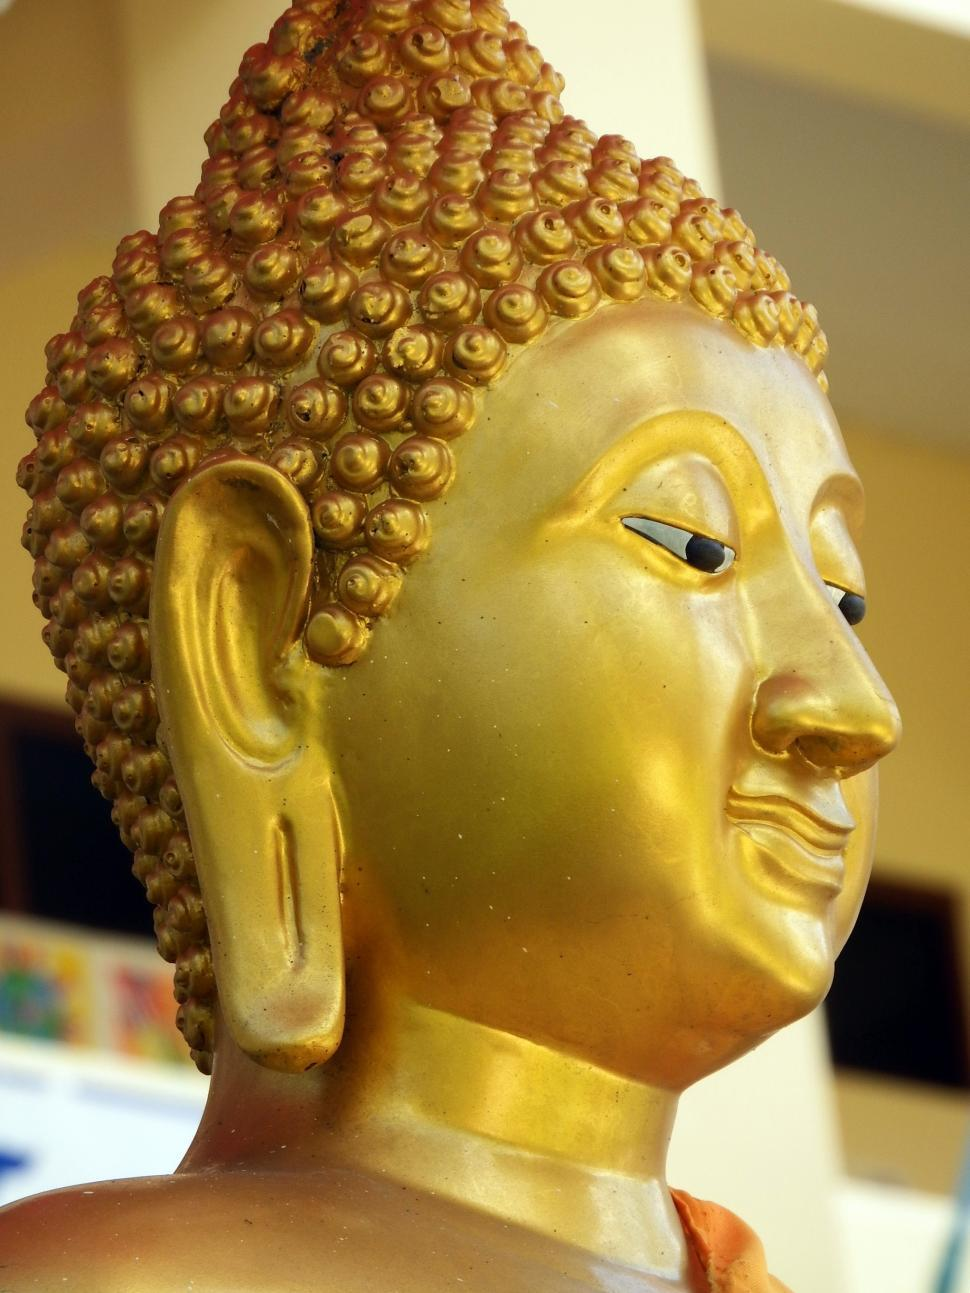 Download Free Stock HD Photo of Golden Buddha Face 2 Online